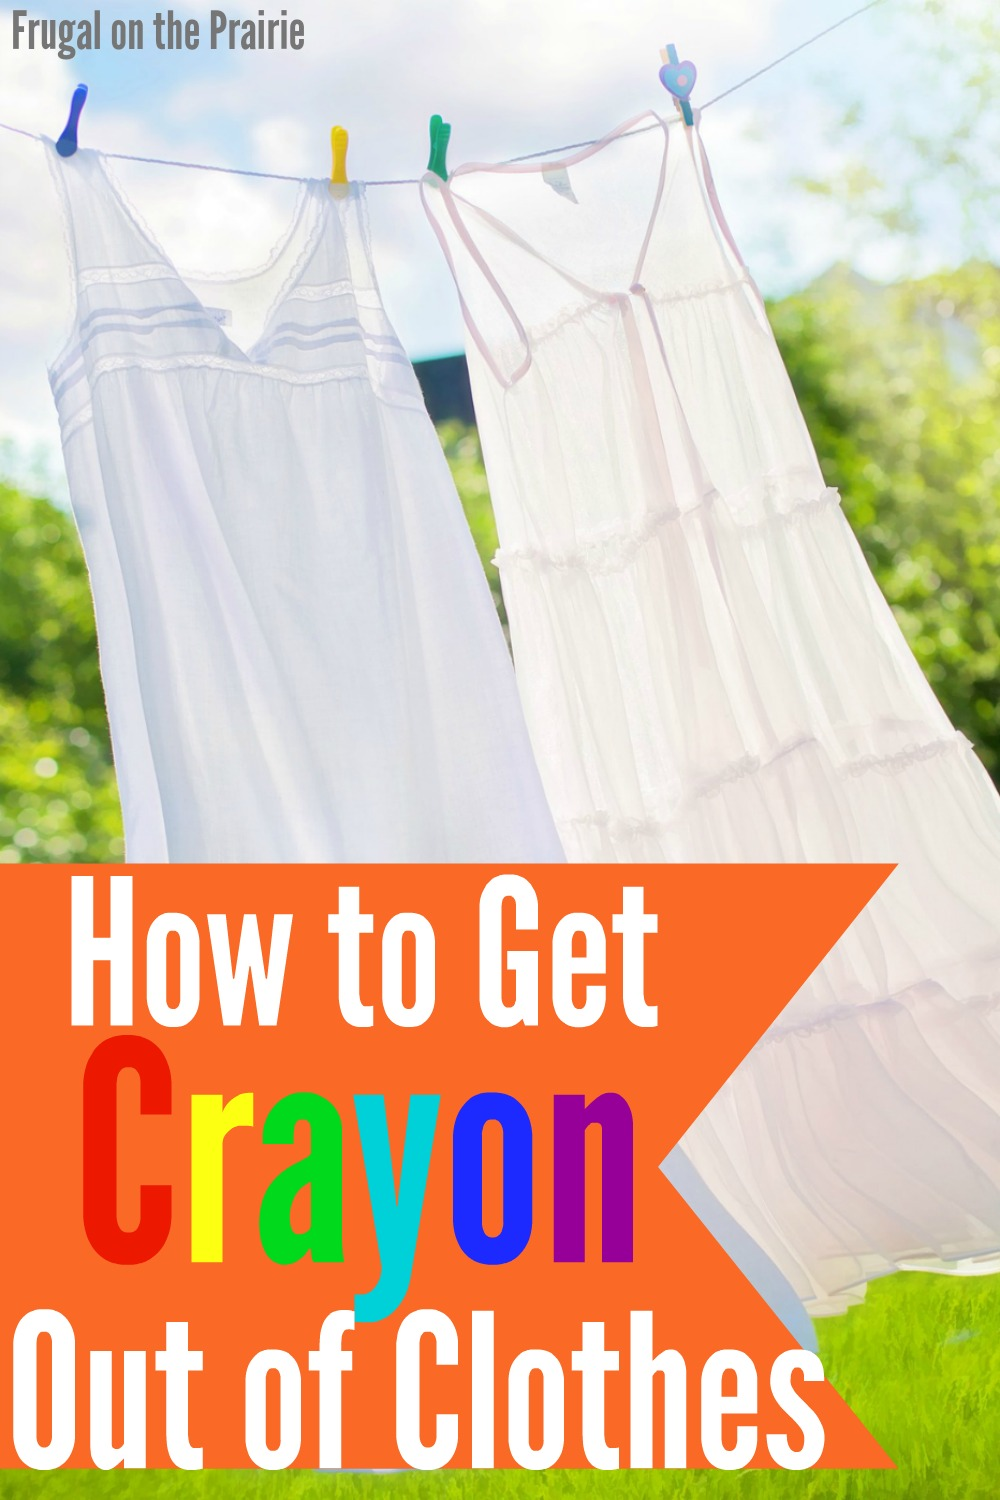 Wondering how to get melted crayon out of clothes? I found a red crayon in our dryer and used this homemade cleaning solution to get the stains out.